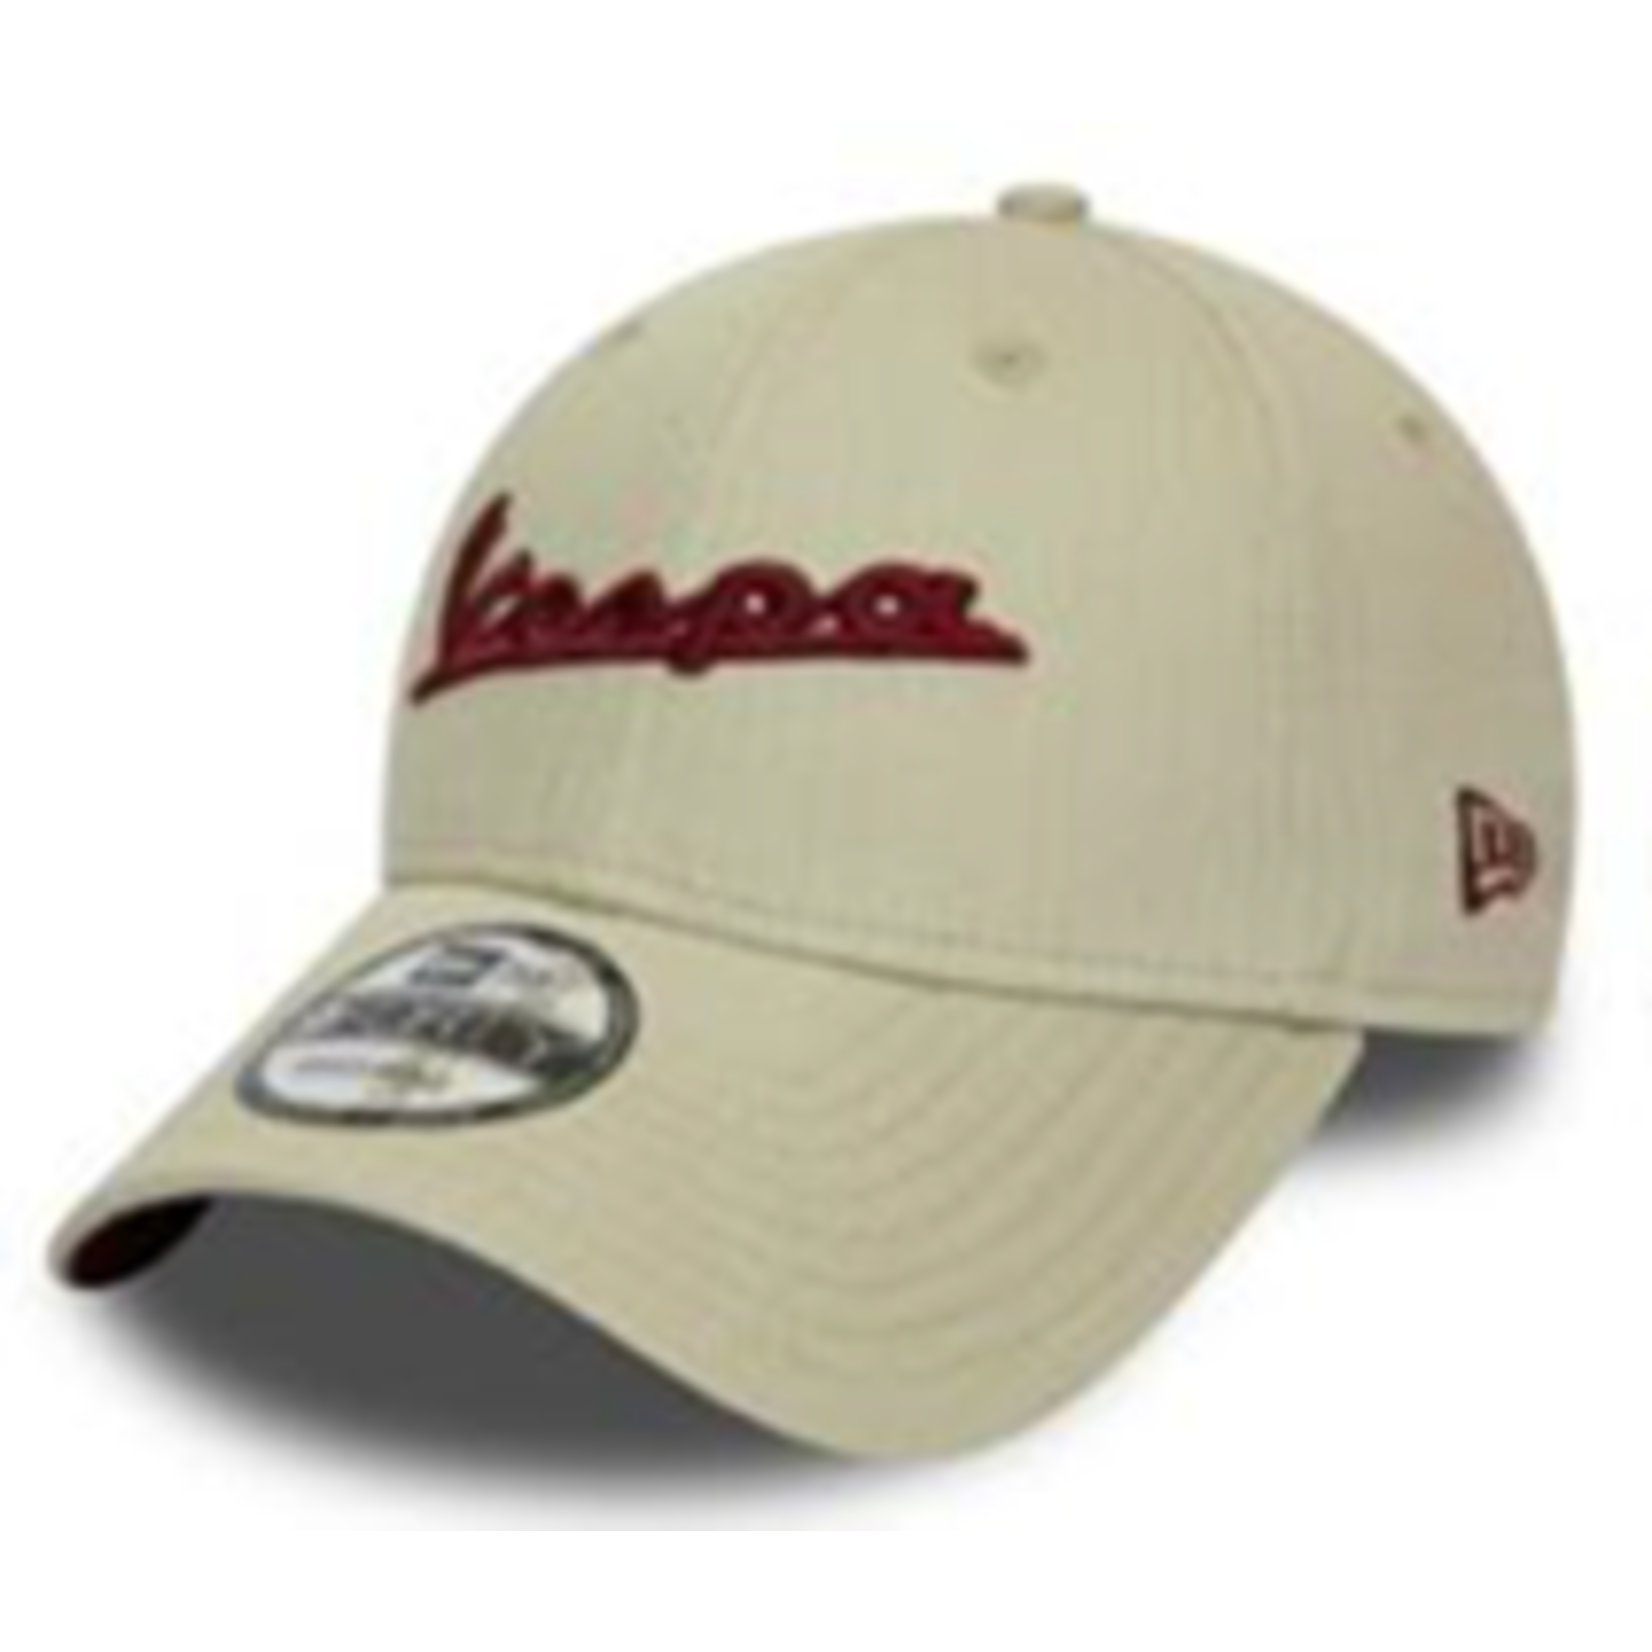 Apparel Hat, Vespa White Ball Cap